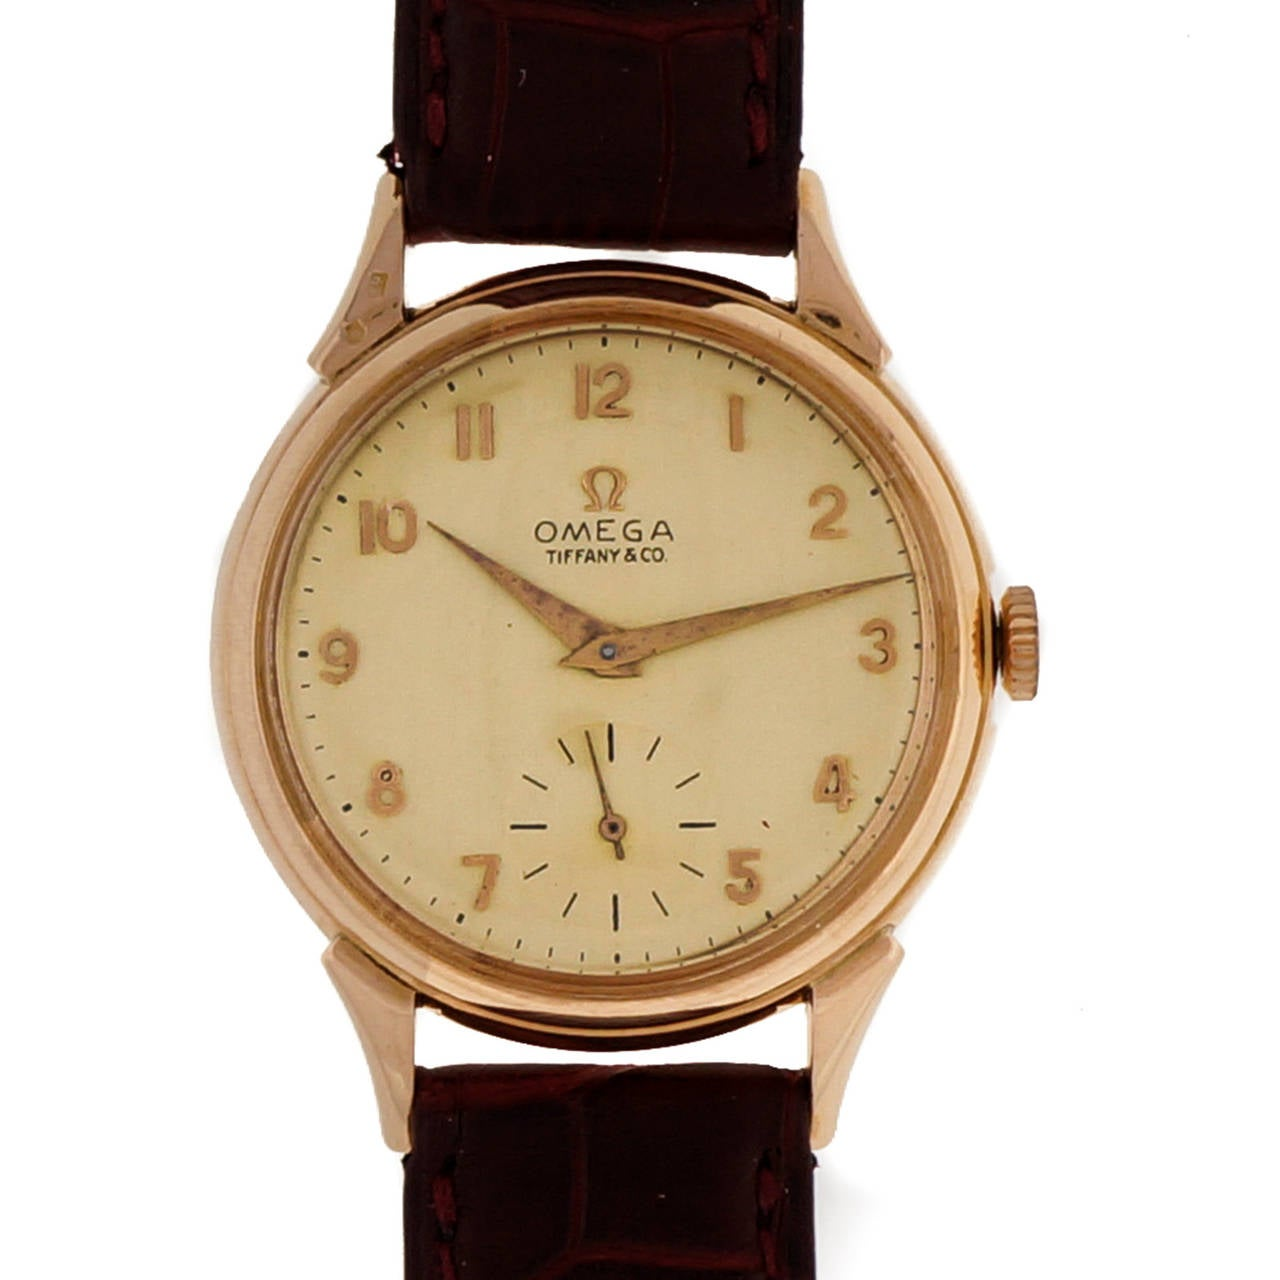 Omega Tiffany & Co. Rose Gold Wristwatch  In Good Condition For Sale In Stamford, CT